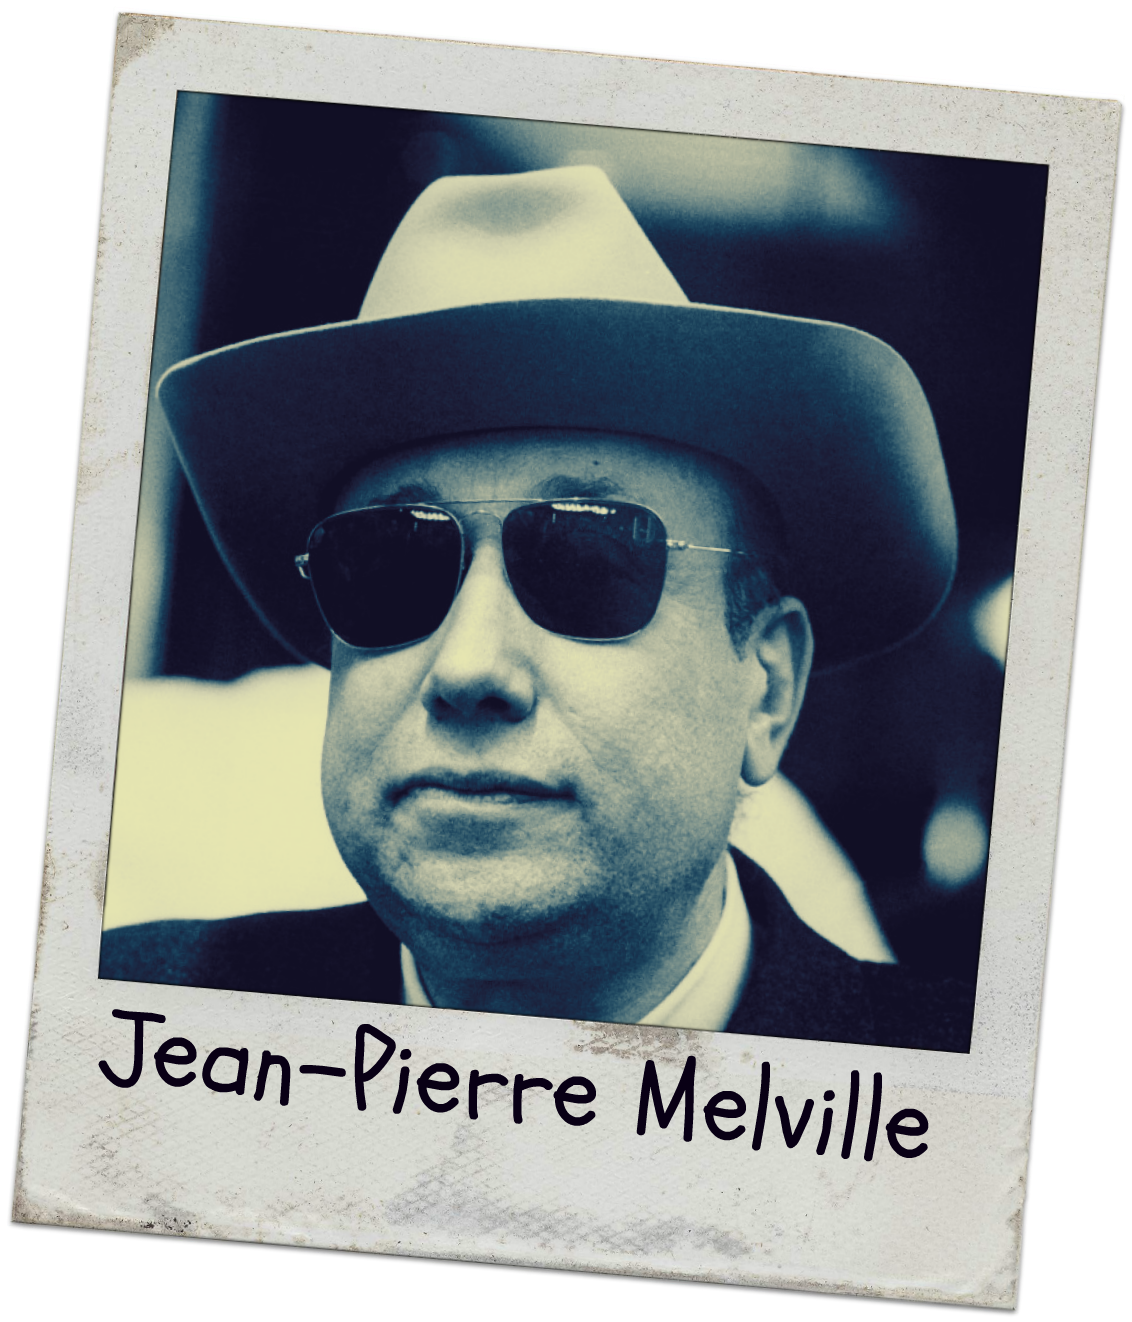 godard jean-pierre search results